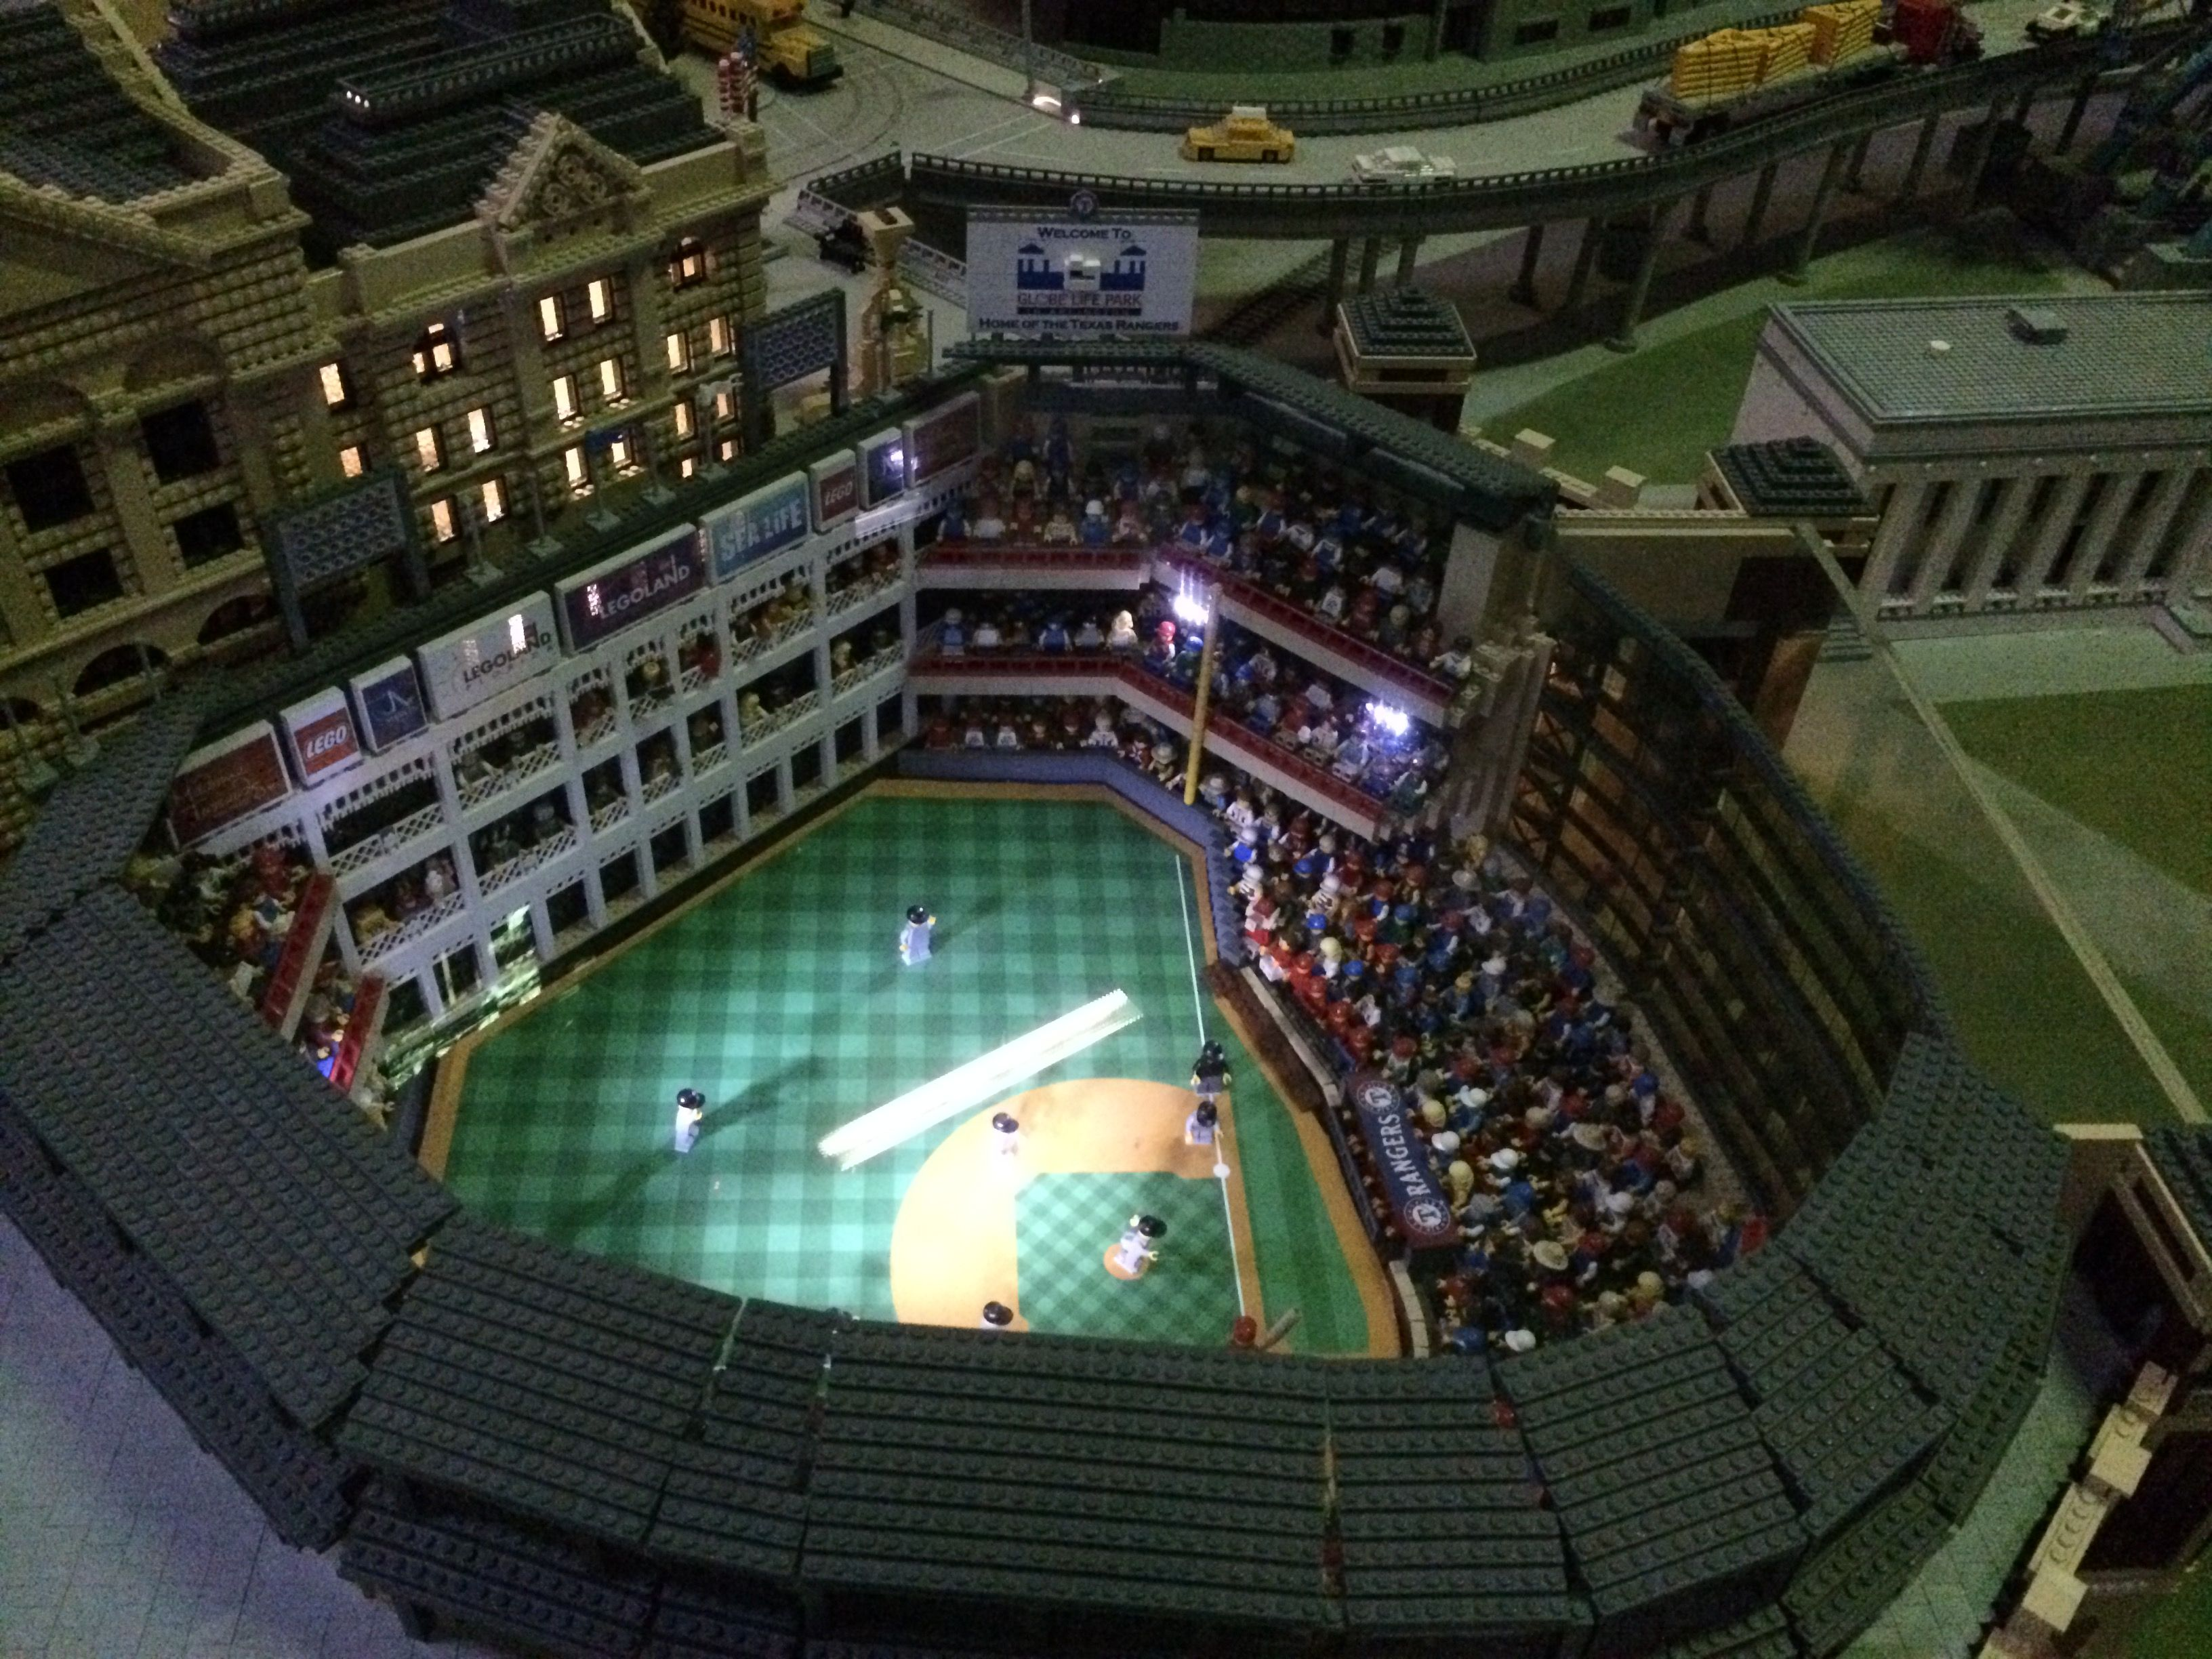 Check out this incredible Lego replica of the Texas